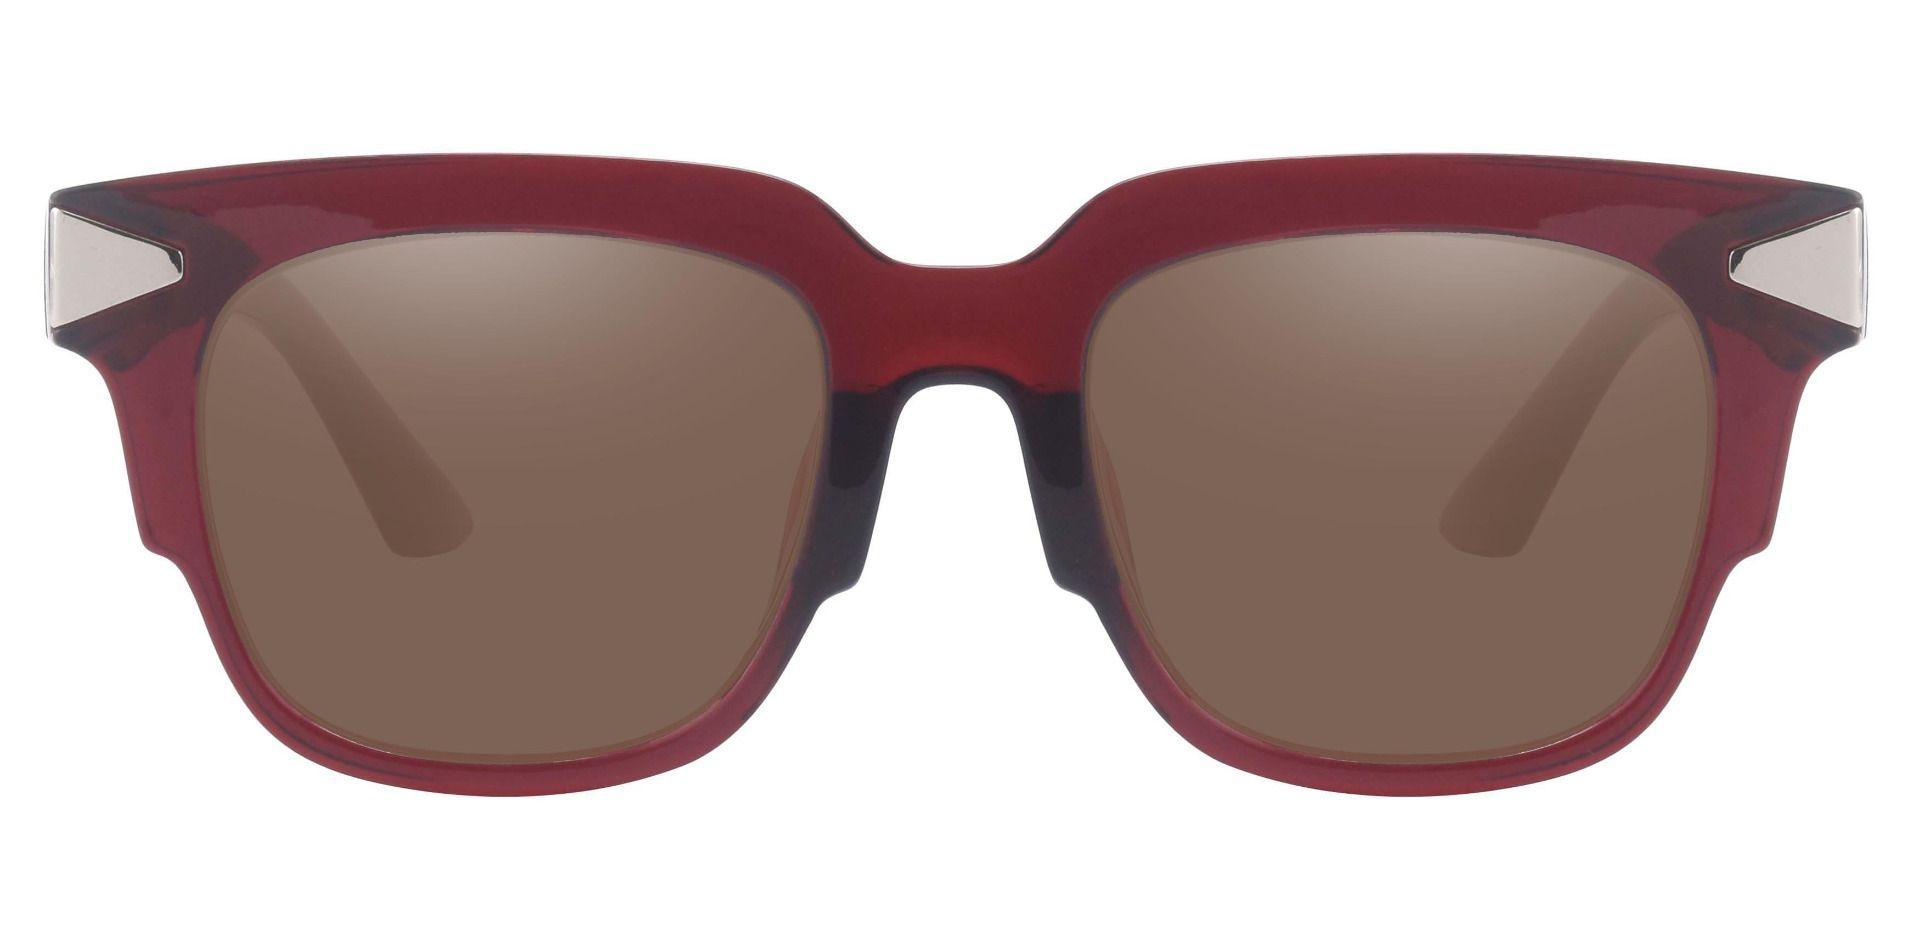 Ardent Square Progressive Sunglasses - Red Frame With Brown Lenses